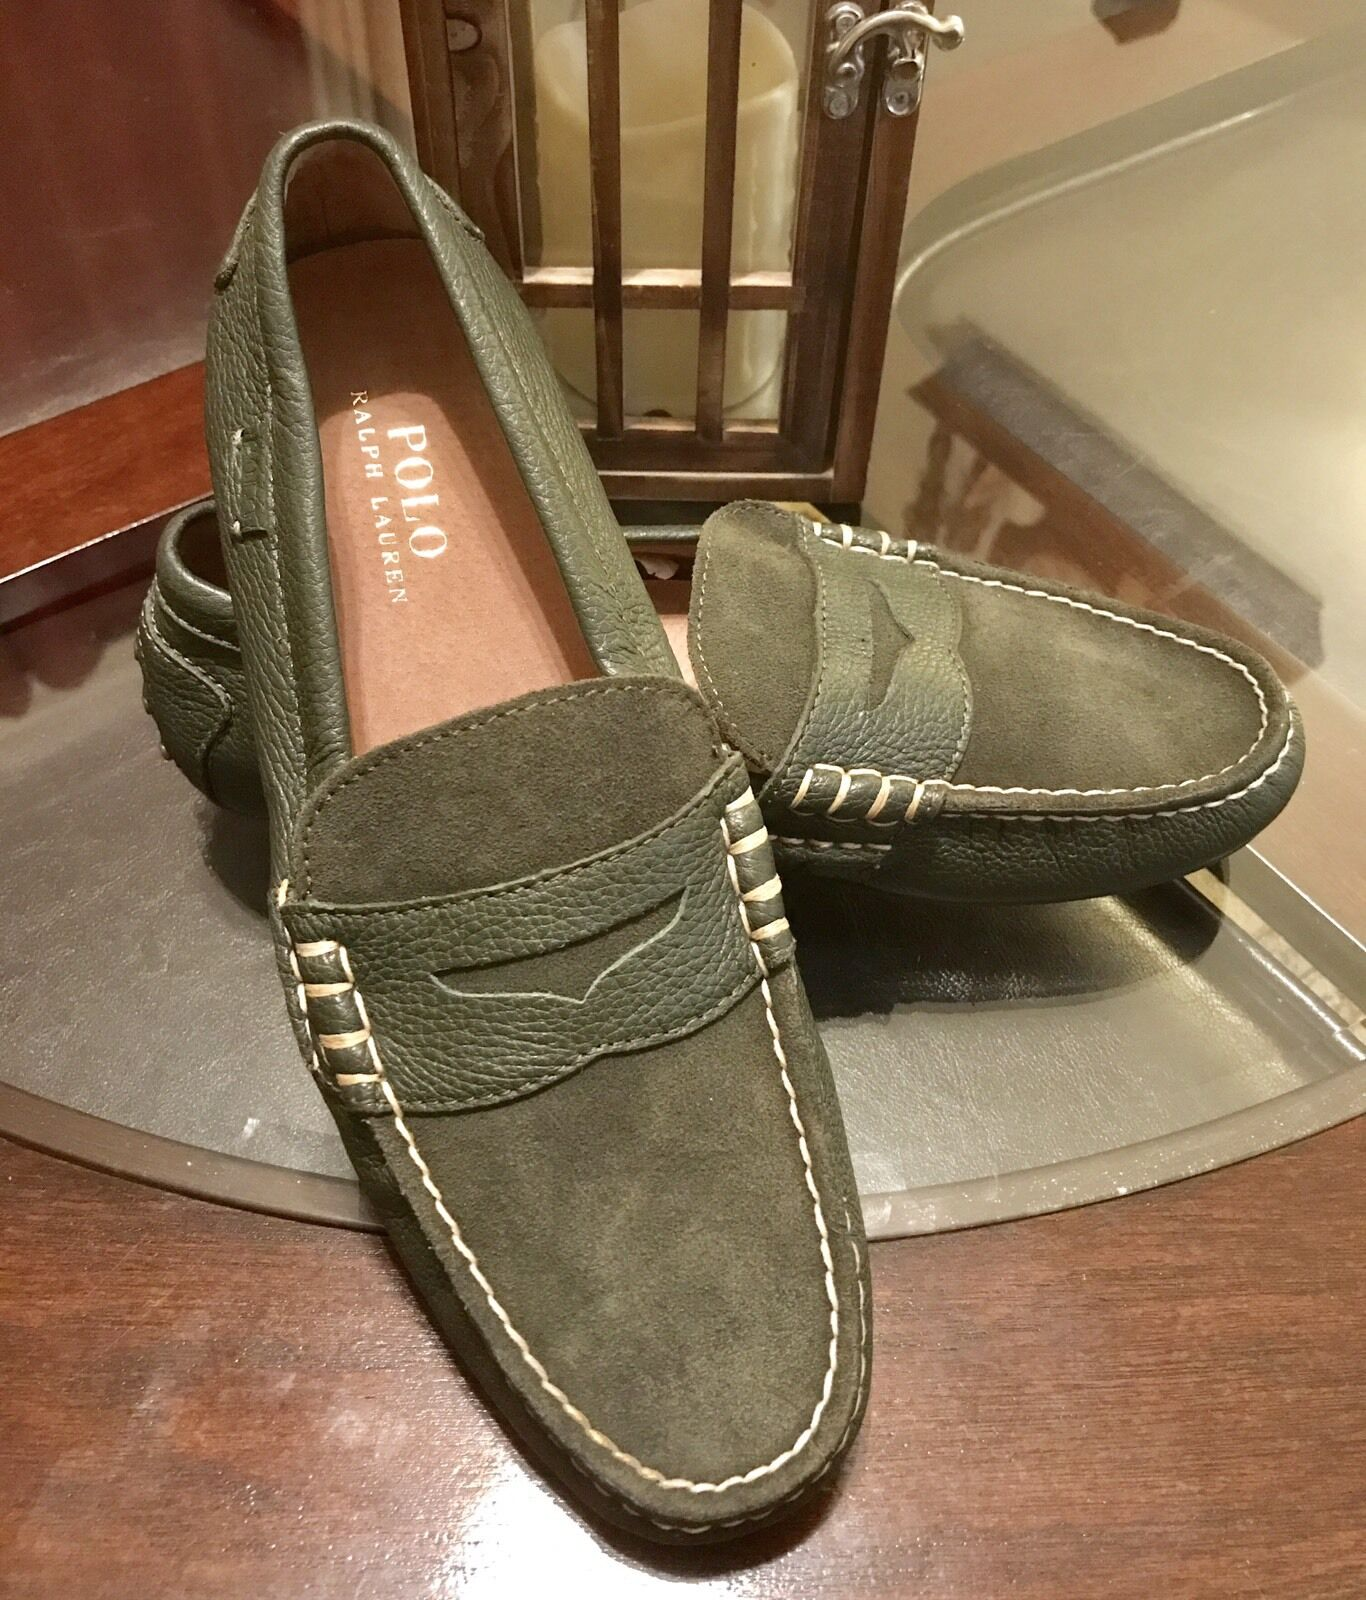 100% Authentic Ralph Lauren Gentlemans Driving Loafers Leather Shoes Size 9 New